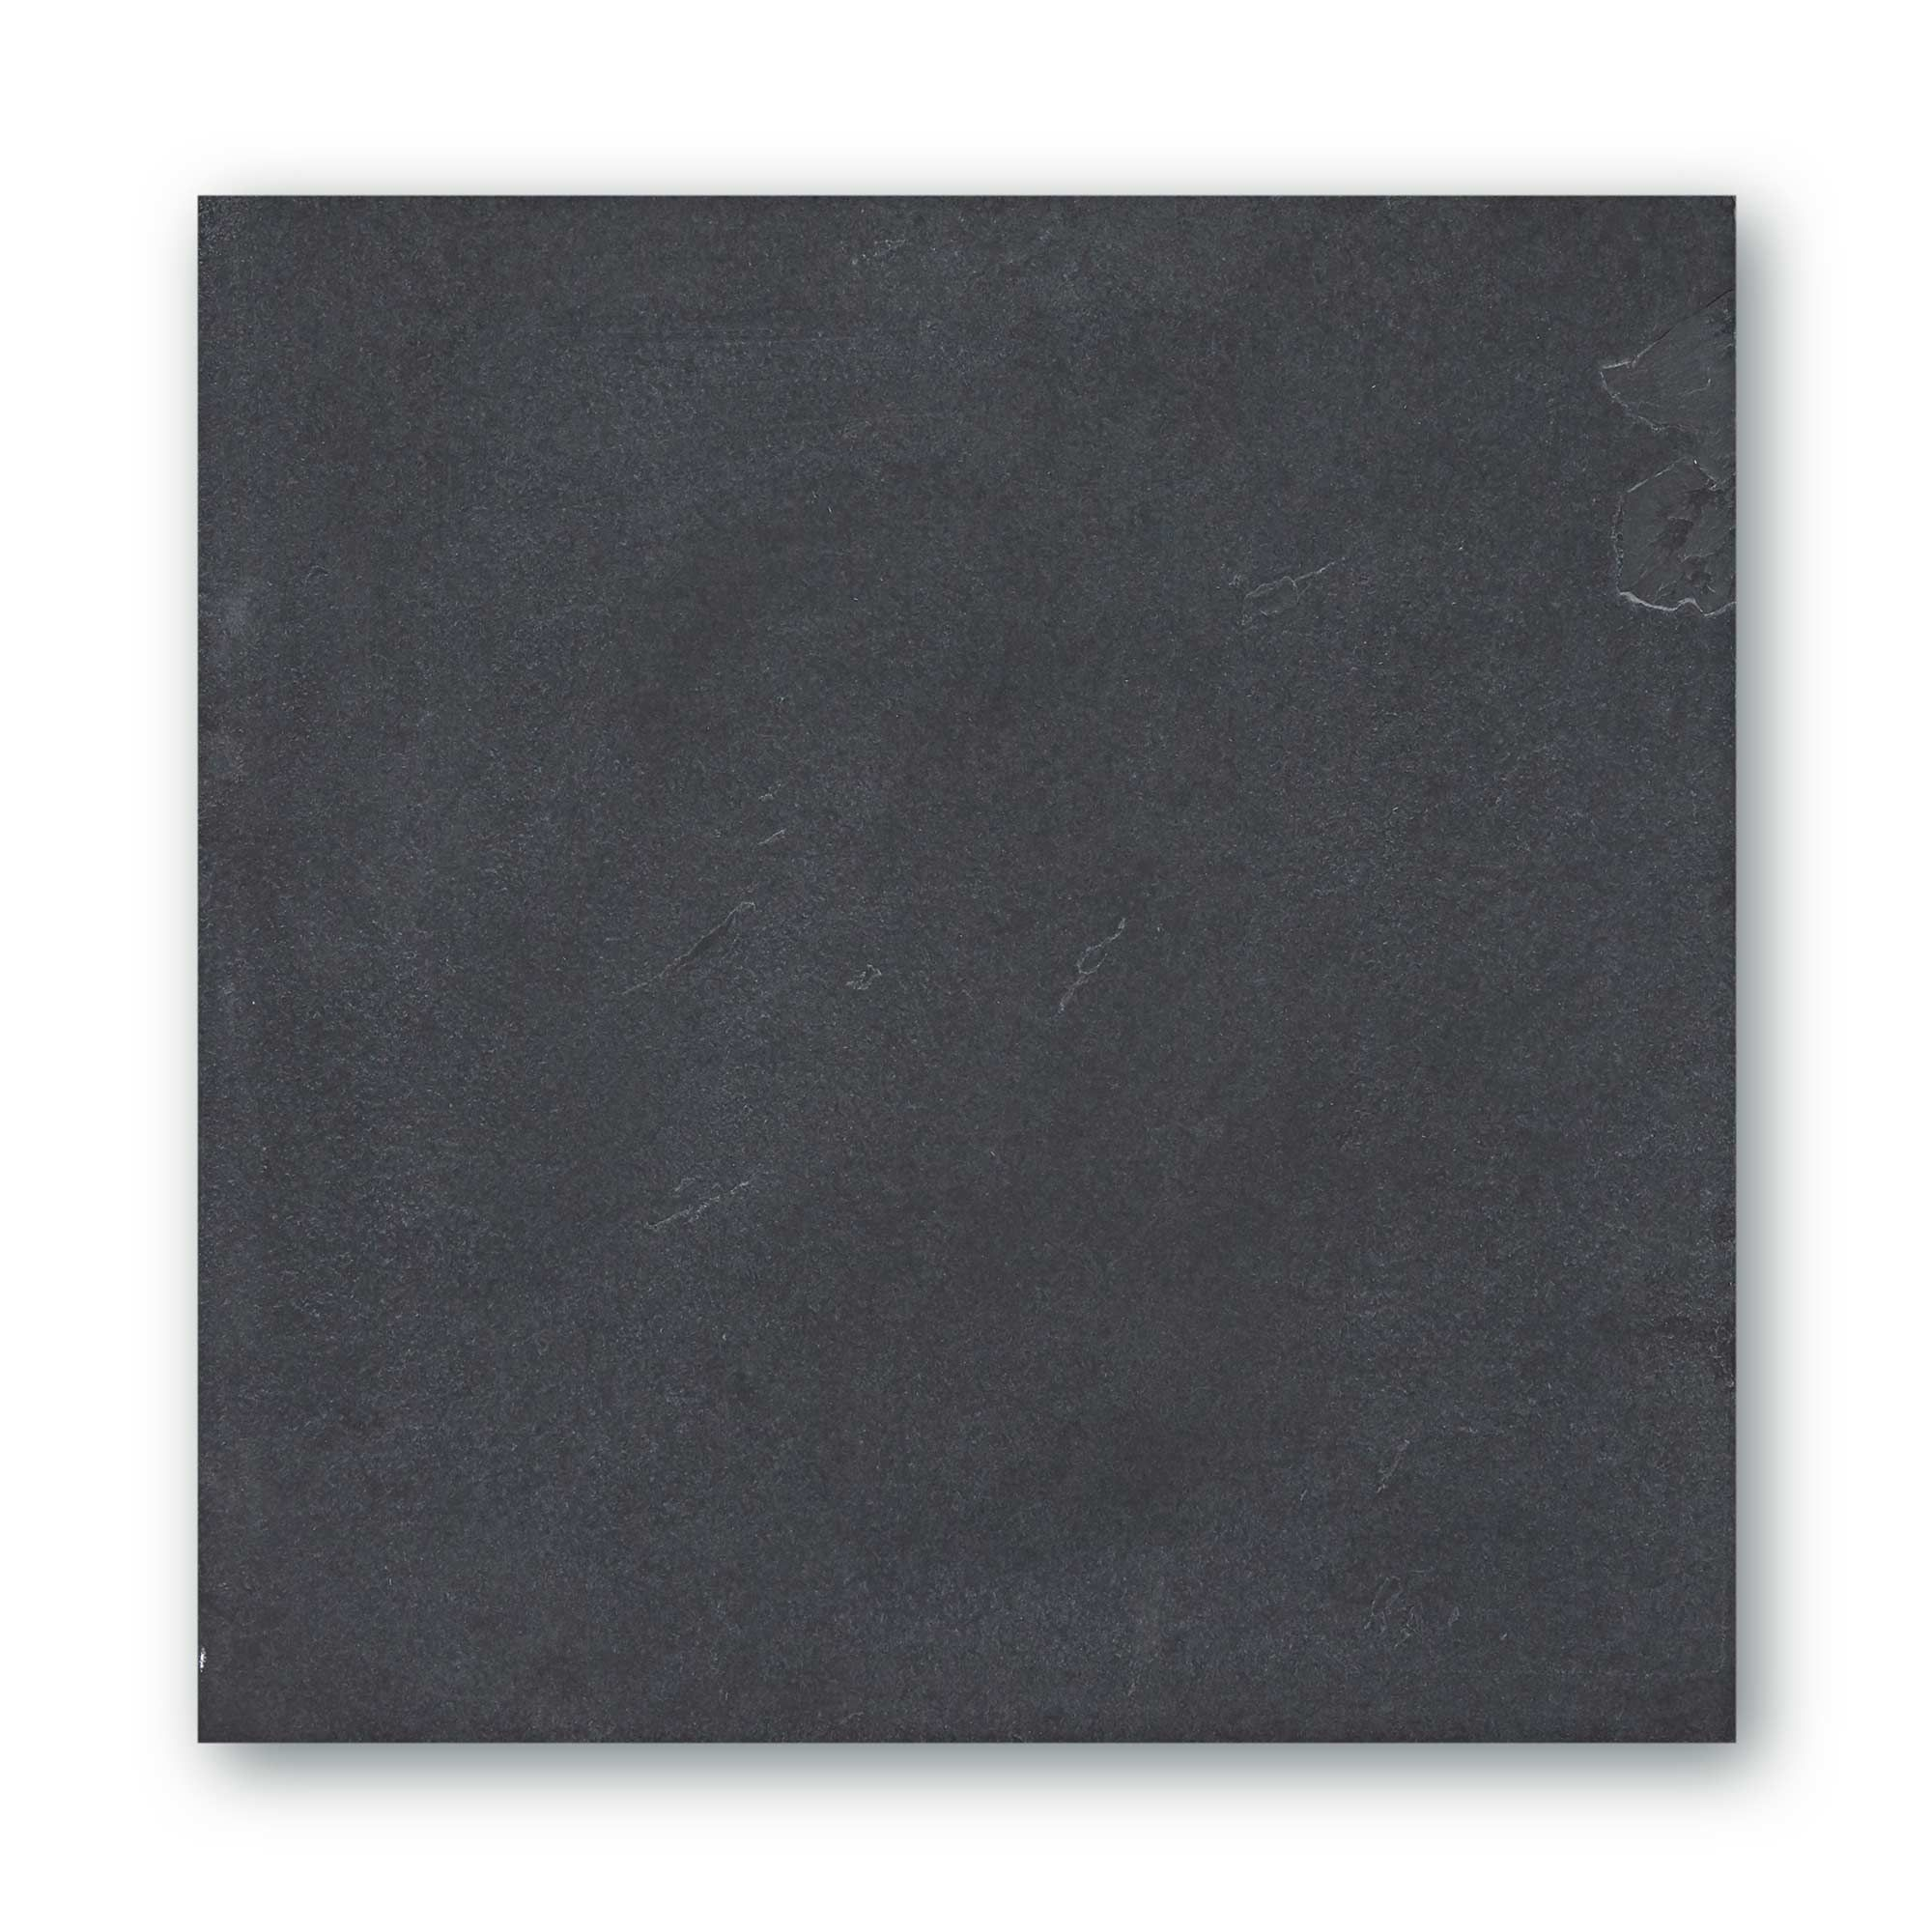 Urban Slate 40x40 Black/Grey